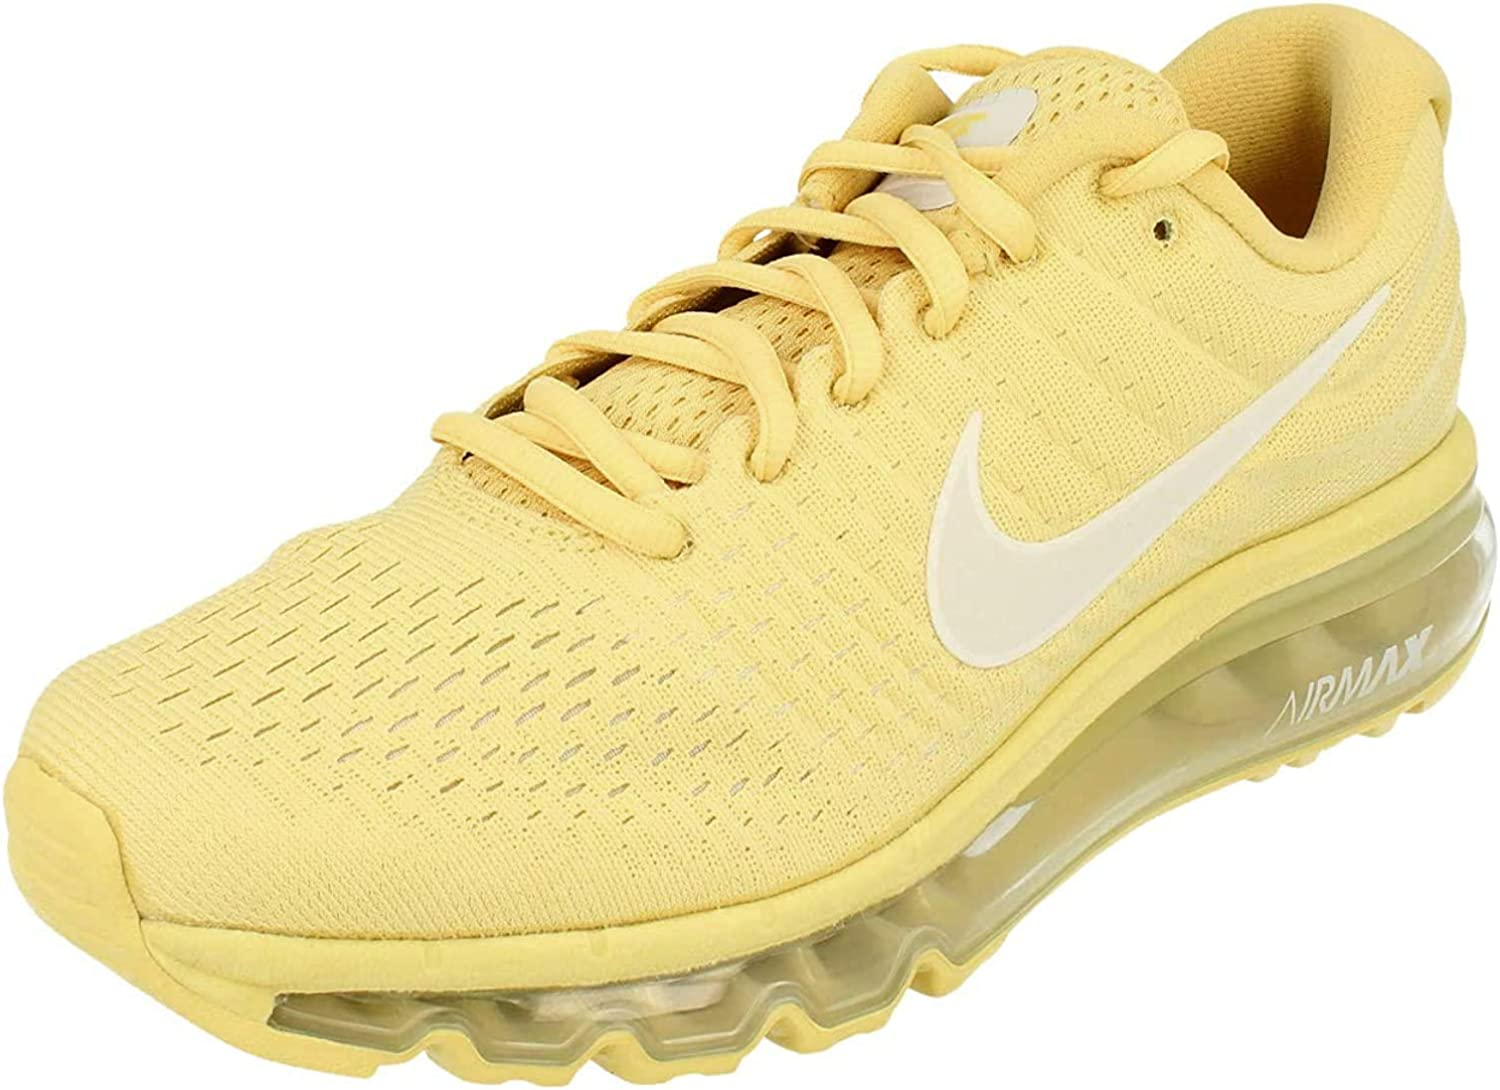 NIIKE Air MAX 2017 SE Lemon Wash/Pure Platinium, Zapatillas de ...